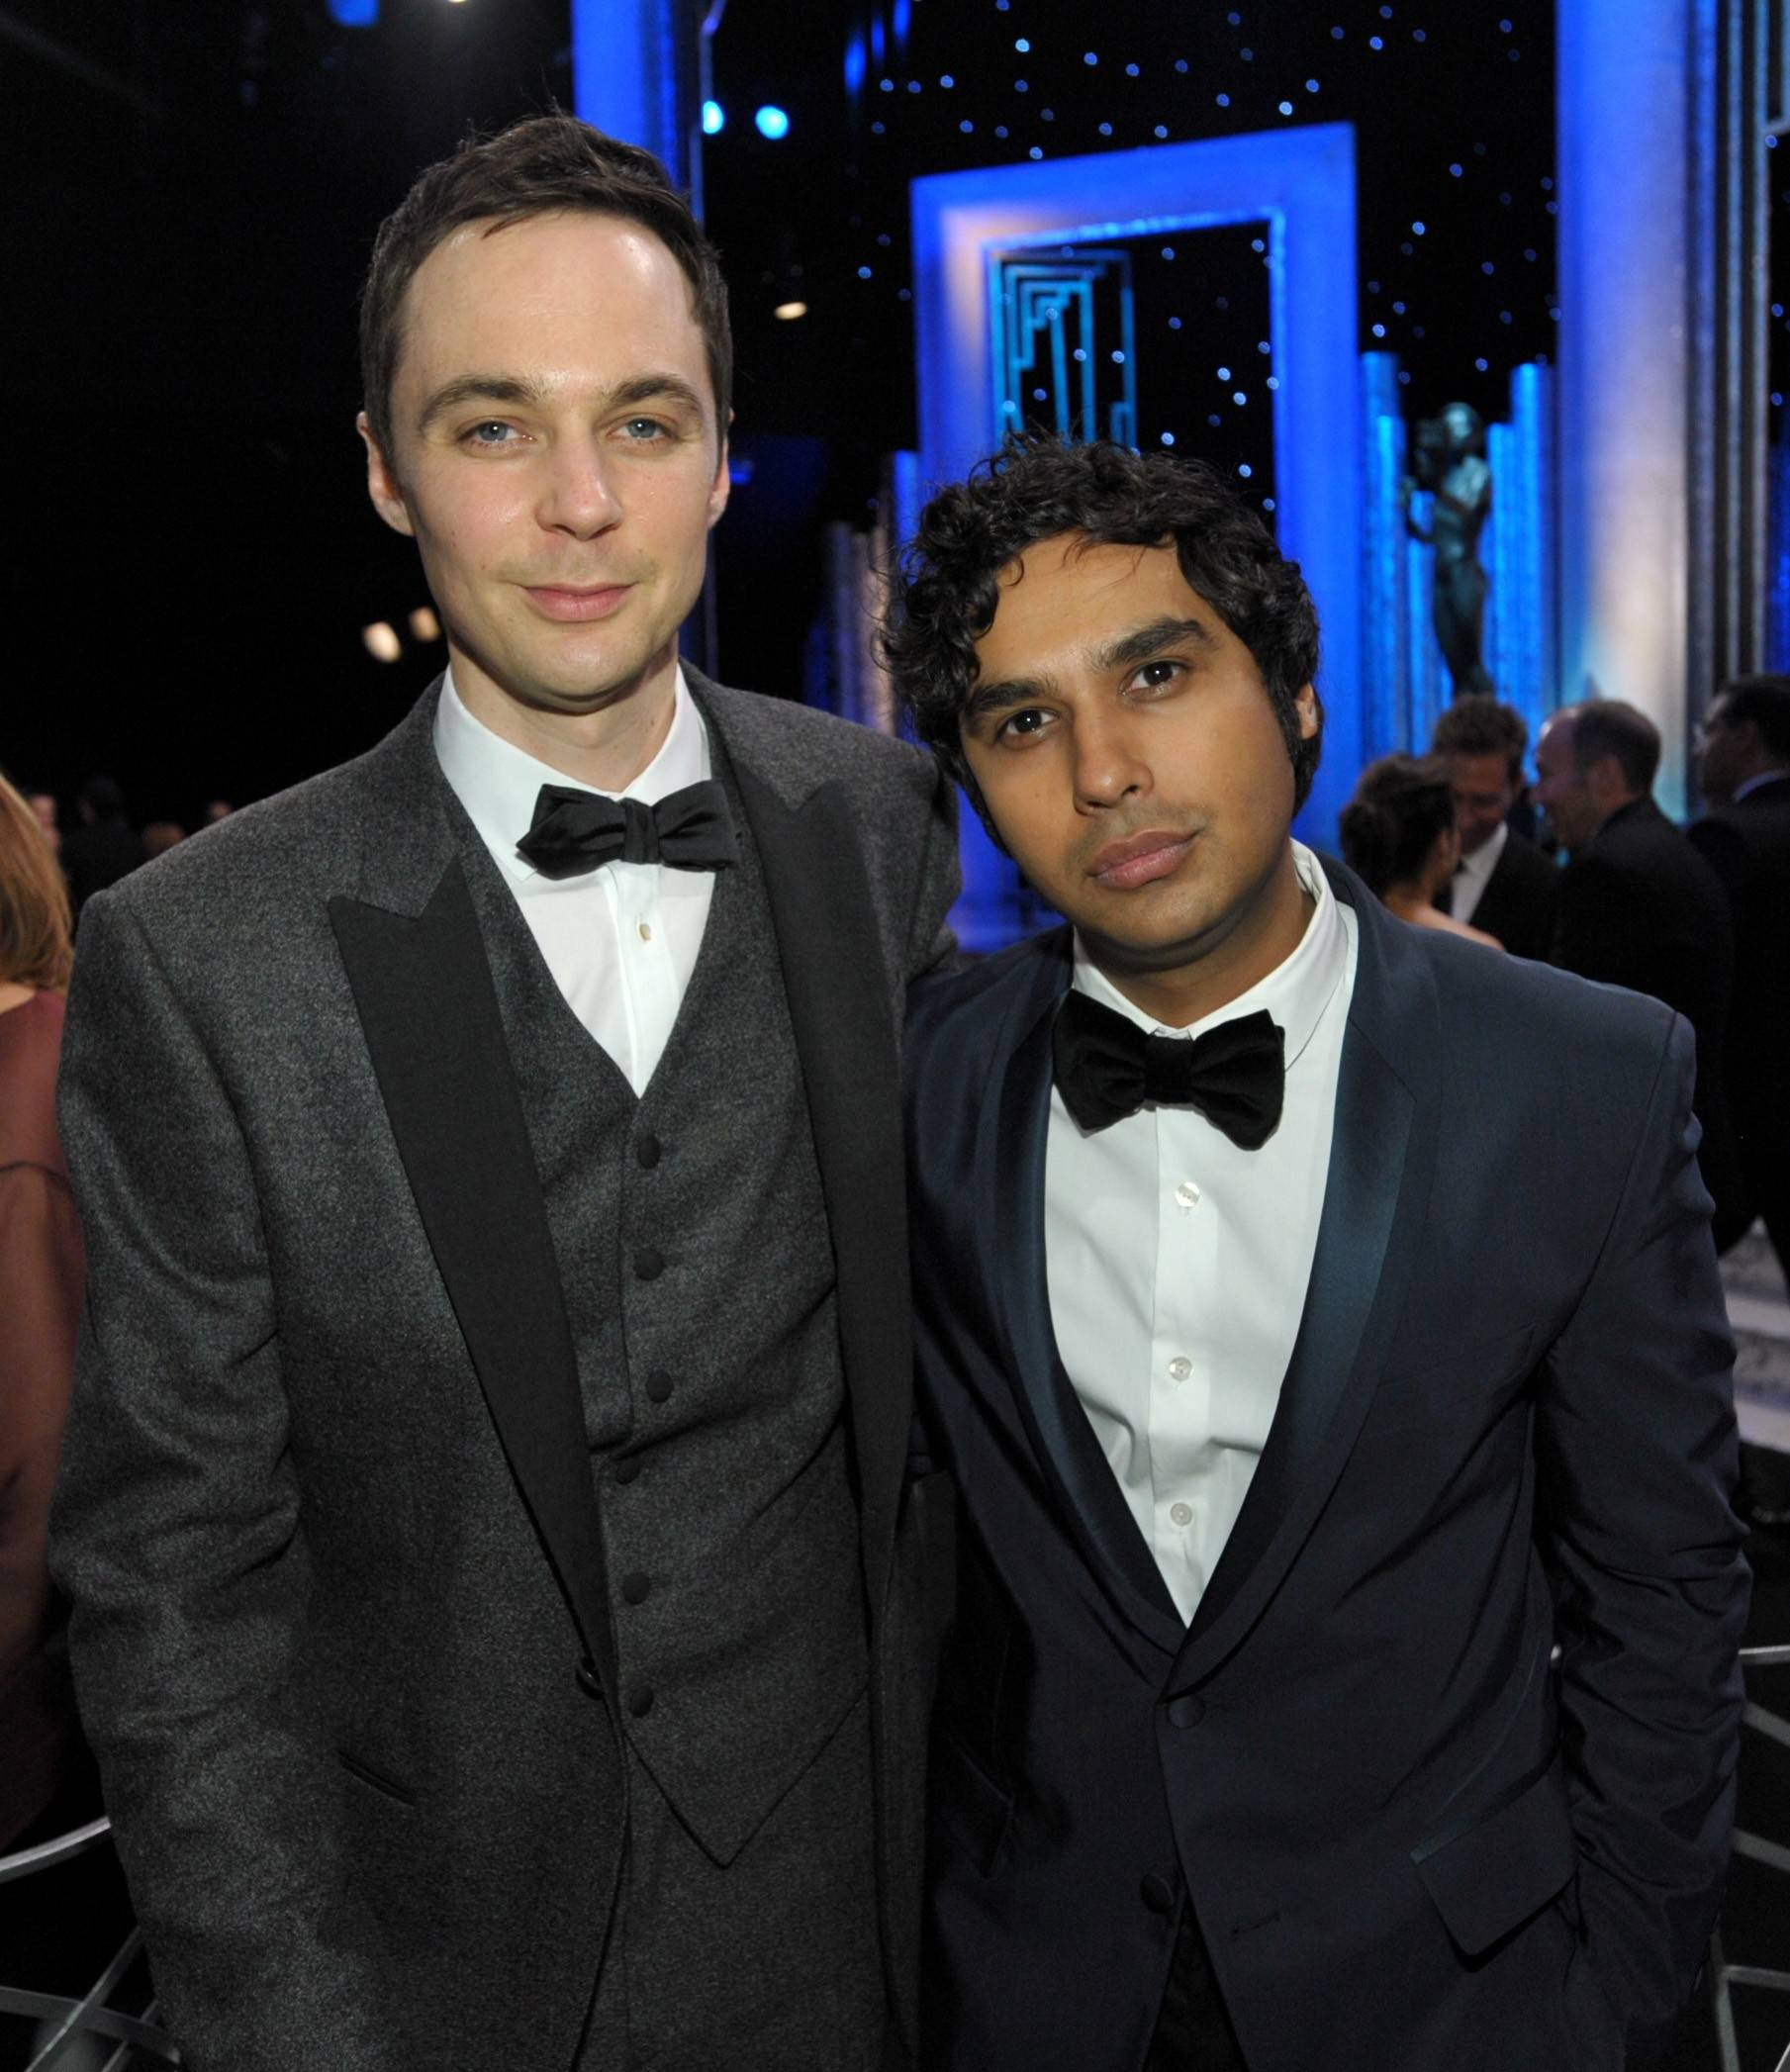 """The BIg Bang Theory"" stars Jim Parsons and Kunal Nayyar hang out during a commercial break at the SAG Awards."